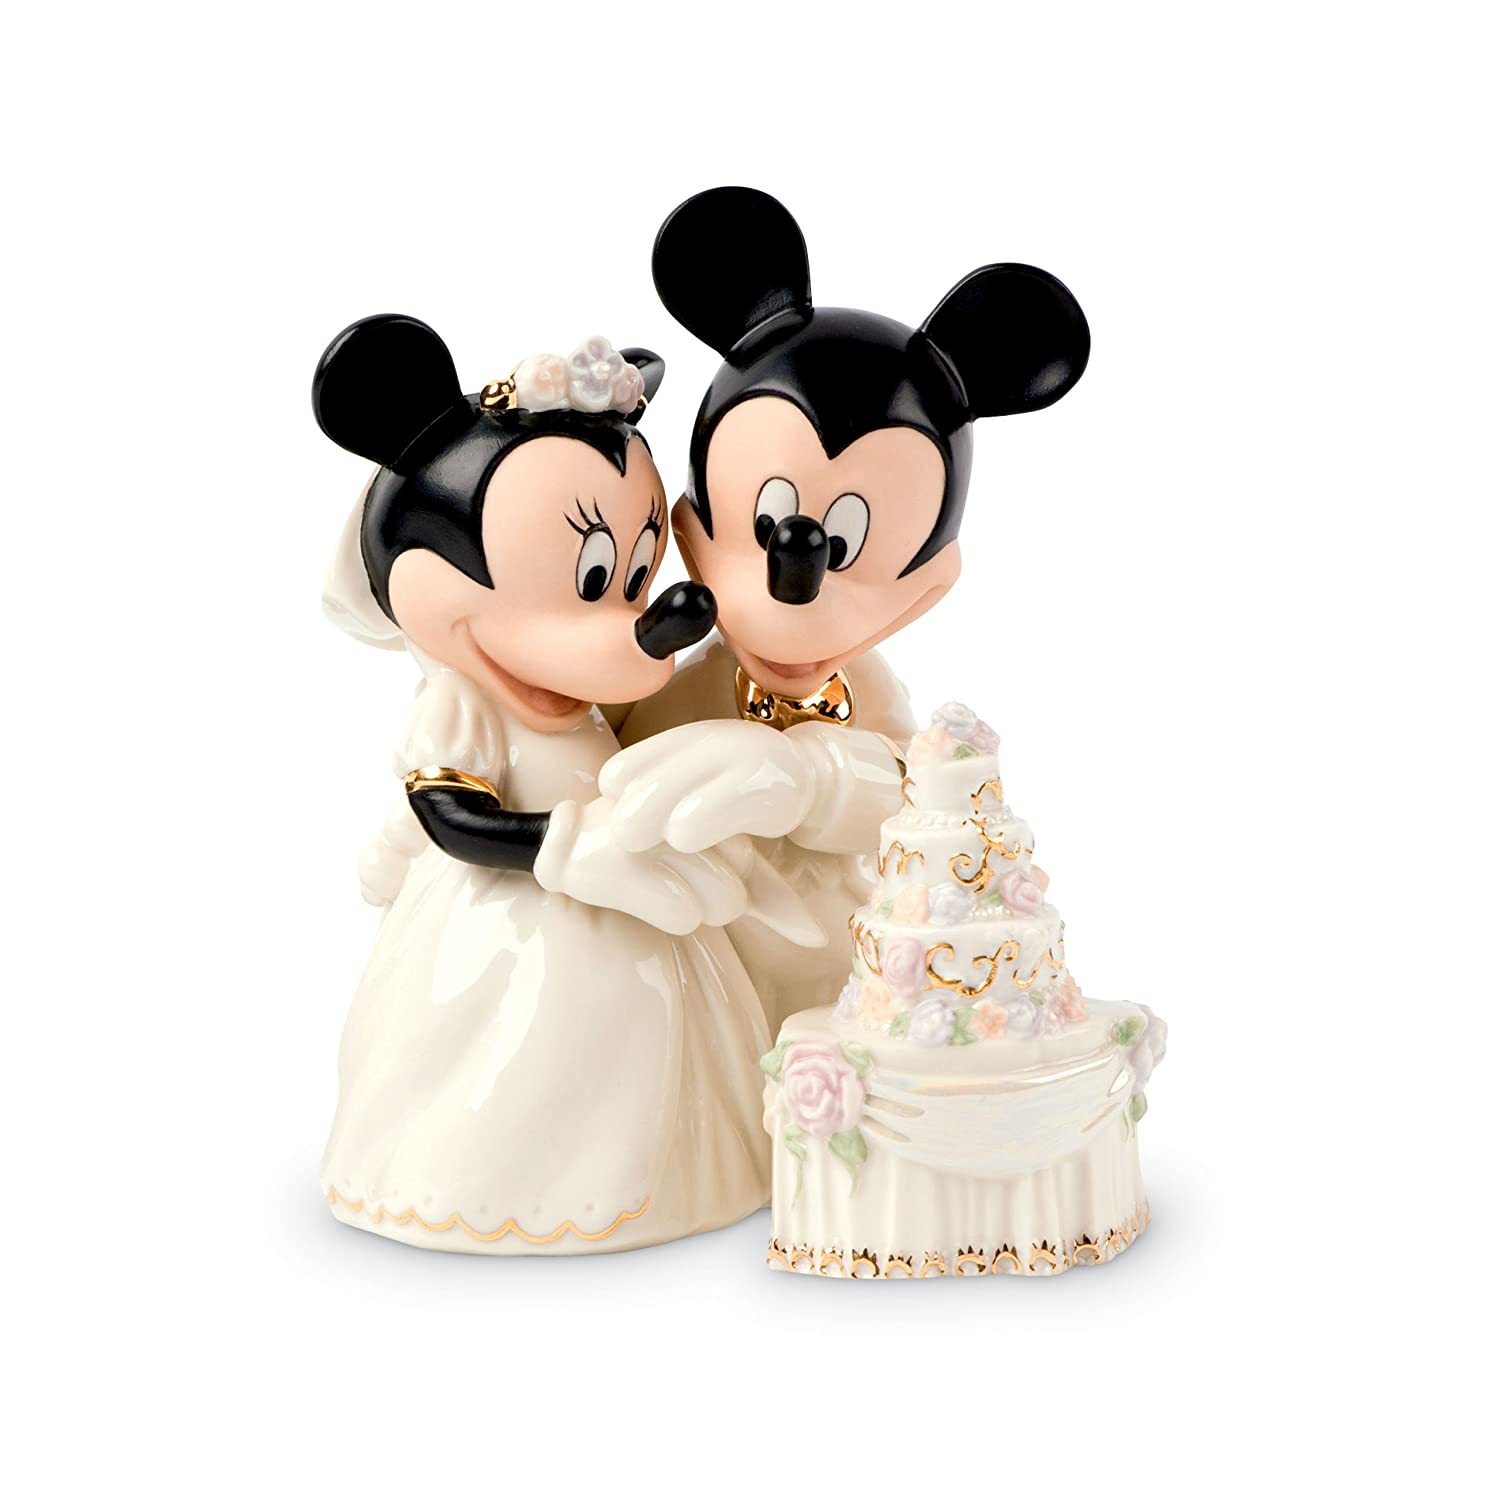 Mickey Mouse Cake Toppers Figurines Uk